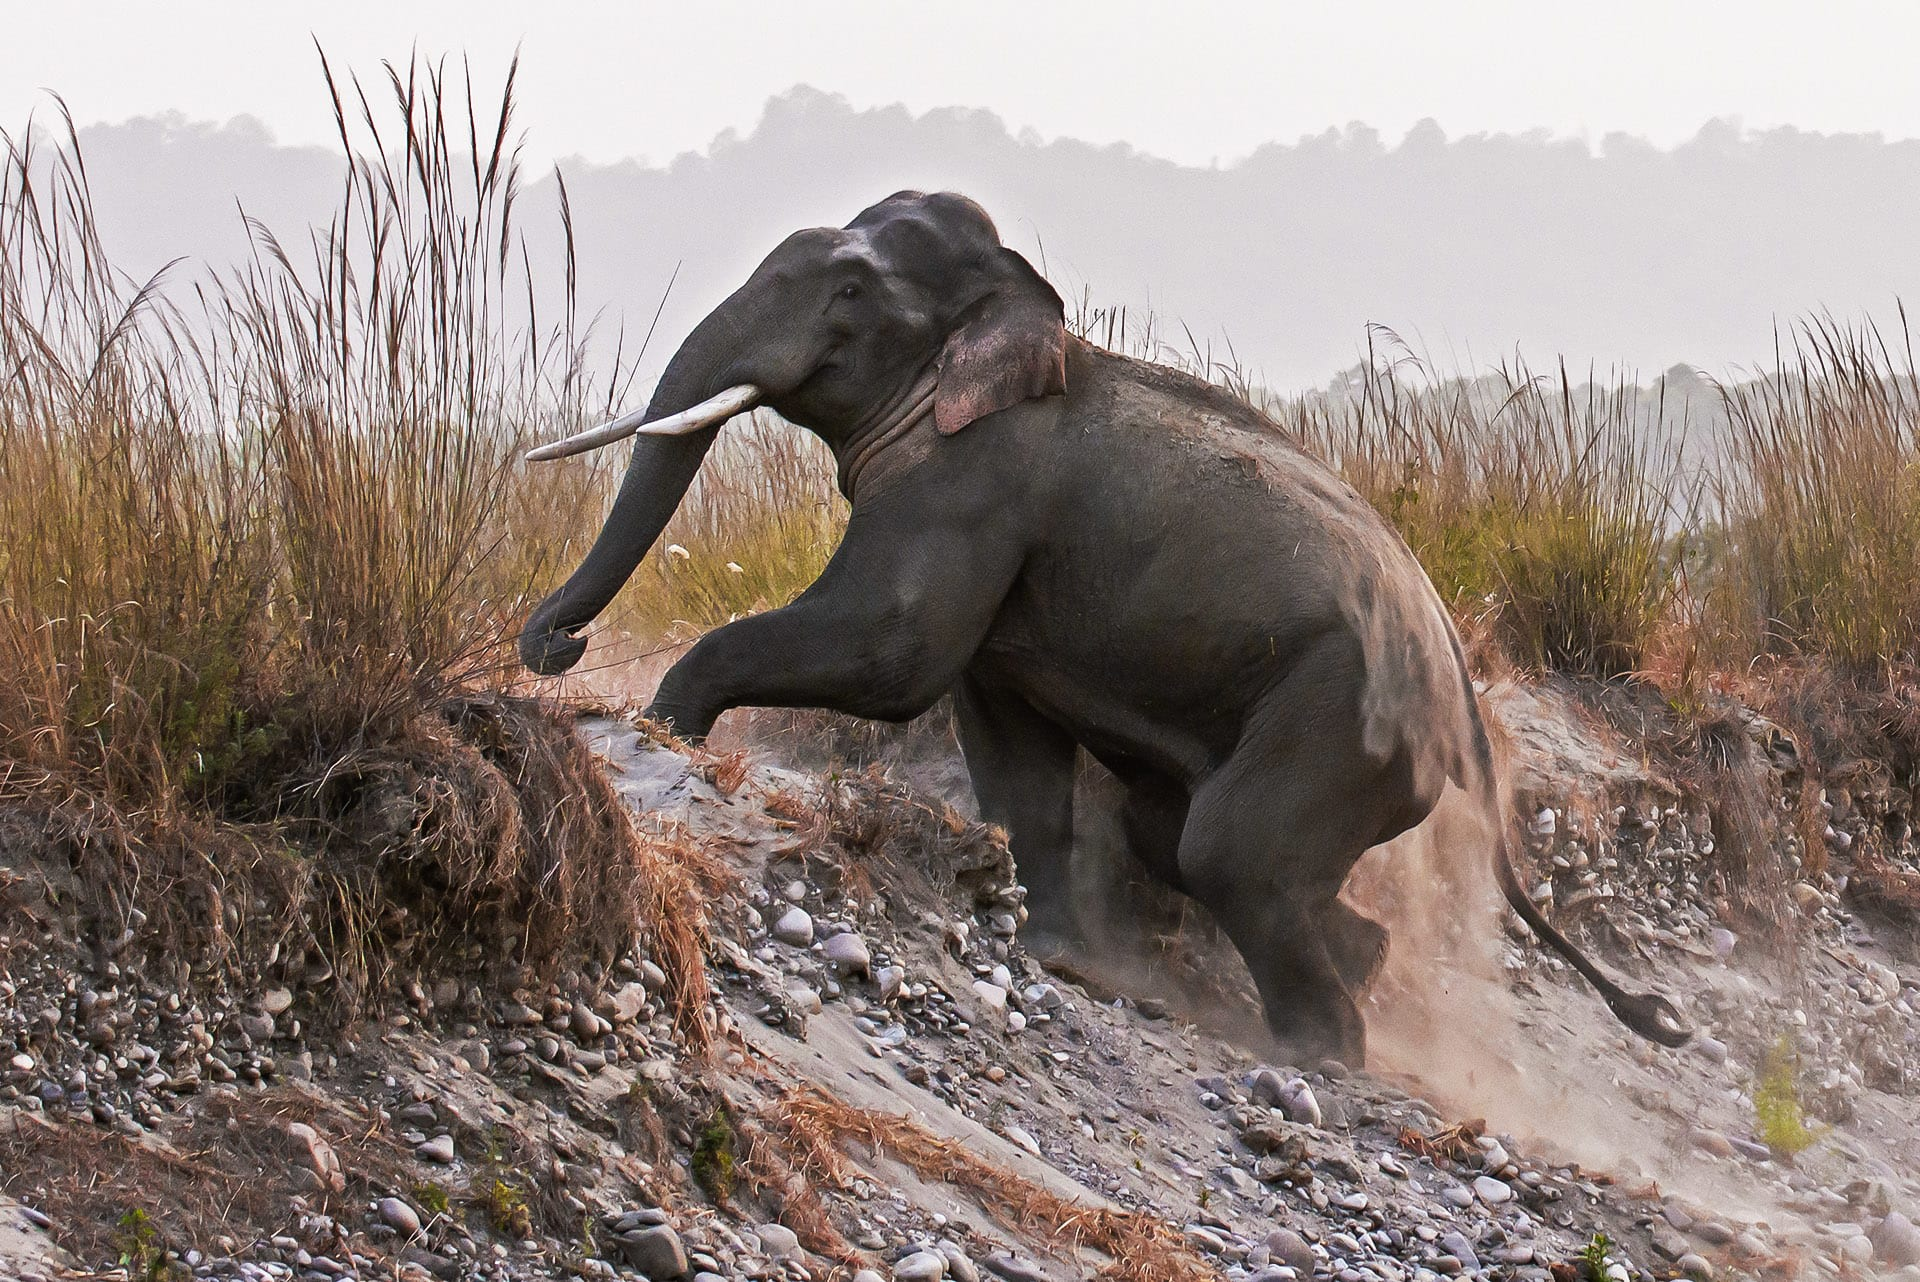 """As parts of the elephant's habitat is being usurped, instances of human-animal conflict have become a greater cause for concern among conservationists. """"During musth, their aggression levels will increase, so they are more likely to stand their ground during interactions,"""" Lakshminarayanan says. """"For example, if you encounter a bull while driving, and instead of backing away, you stand your ground and blow the horn – it might be construed as a display of dominance."""""""